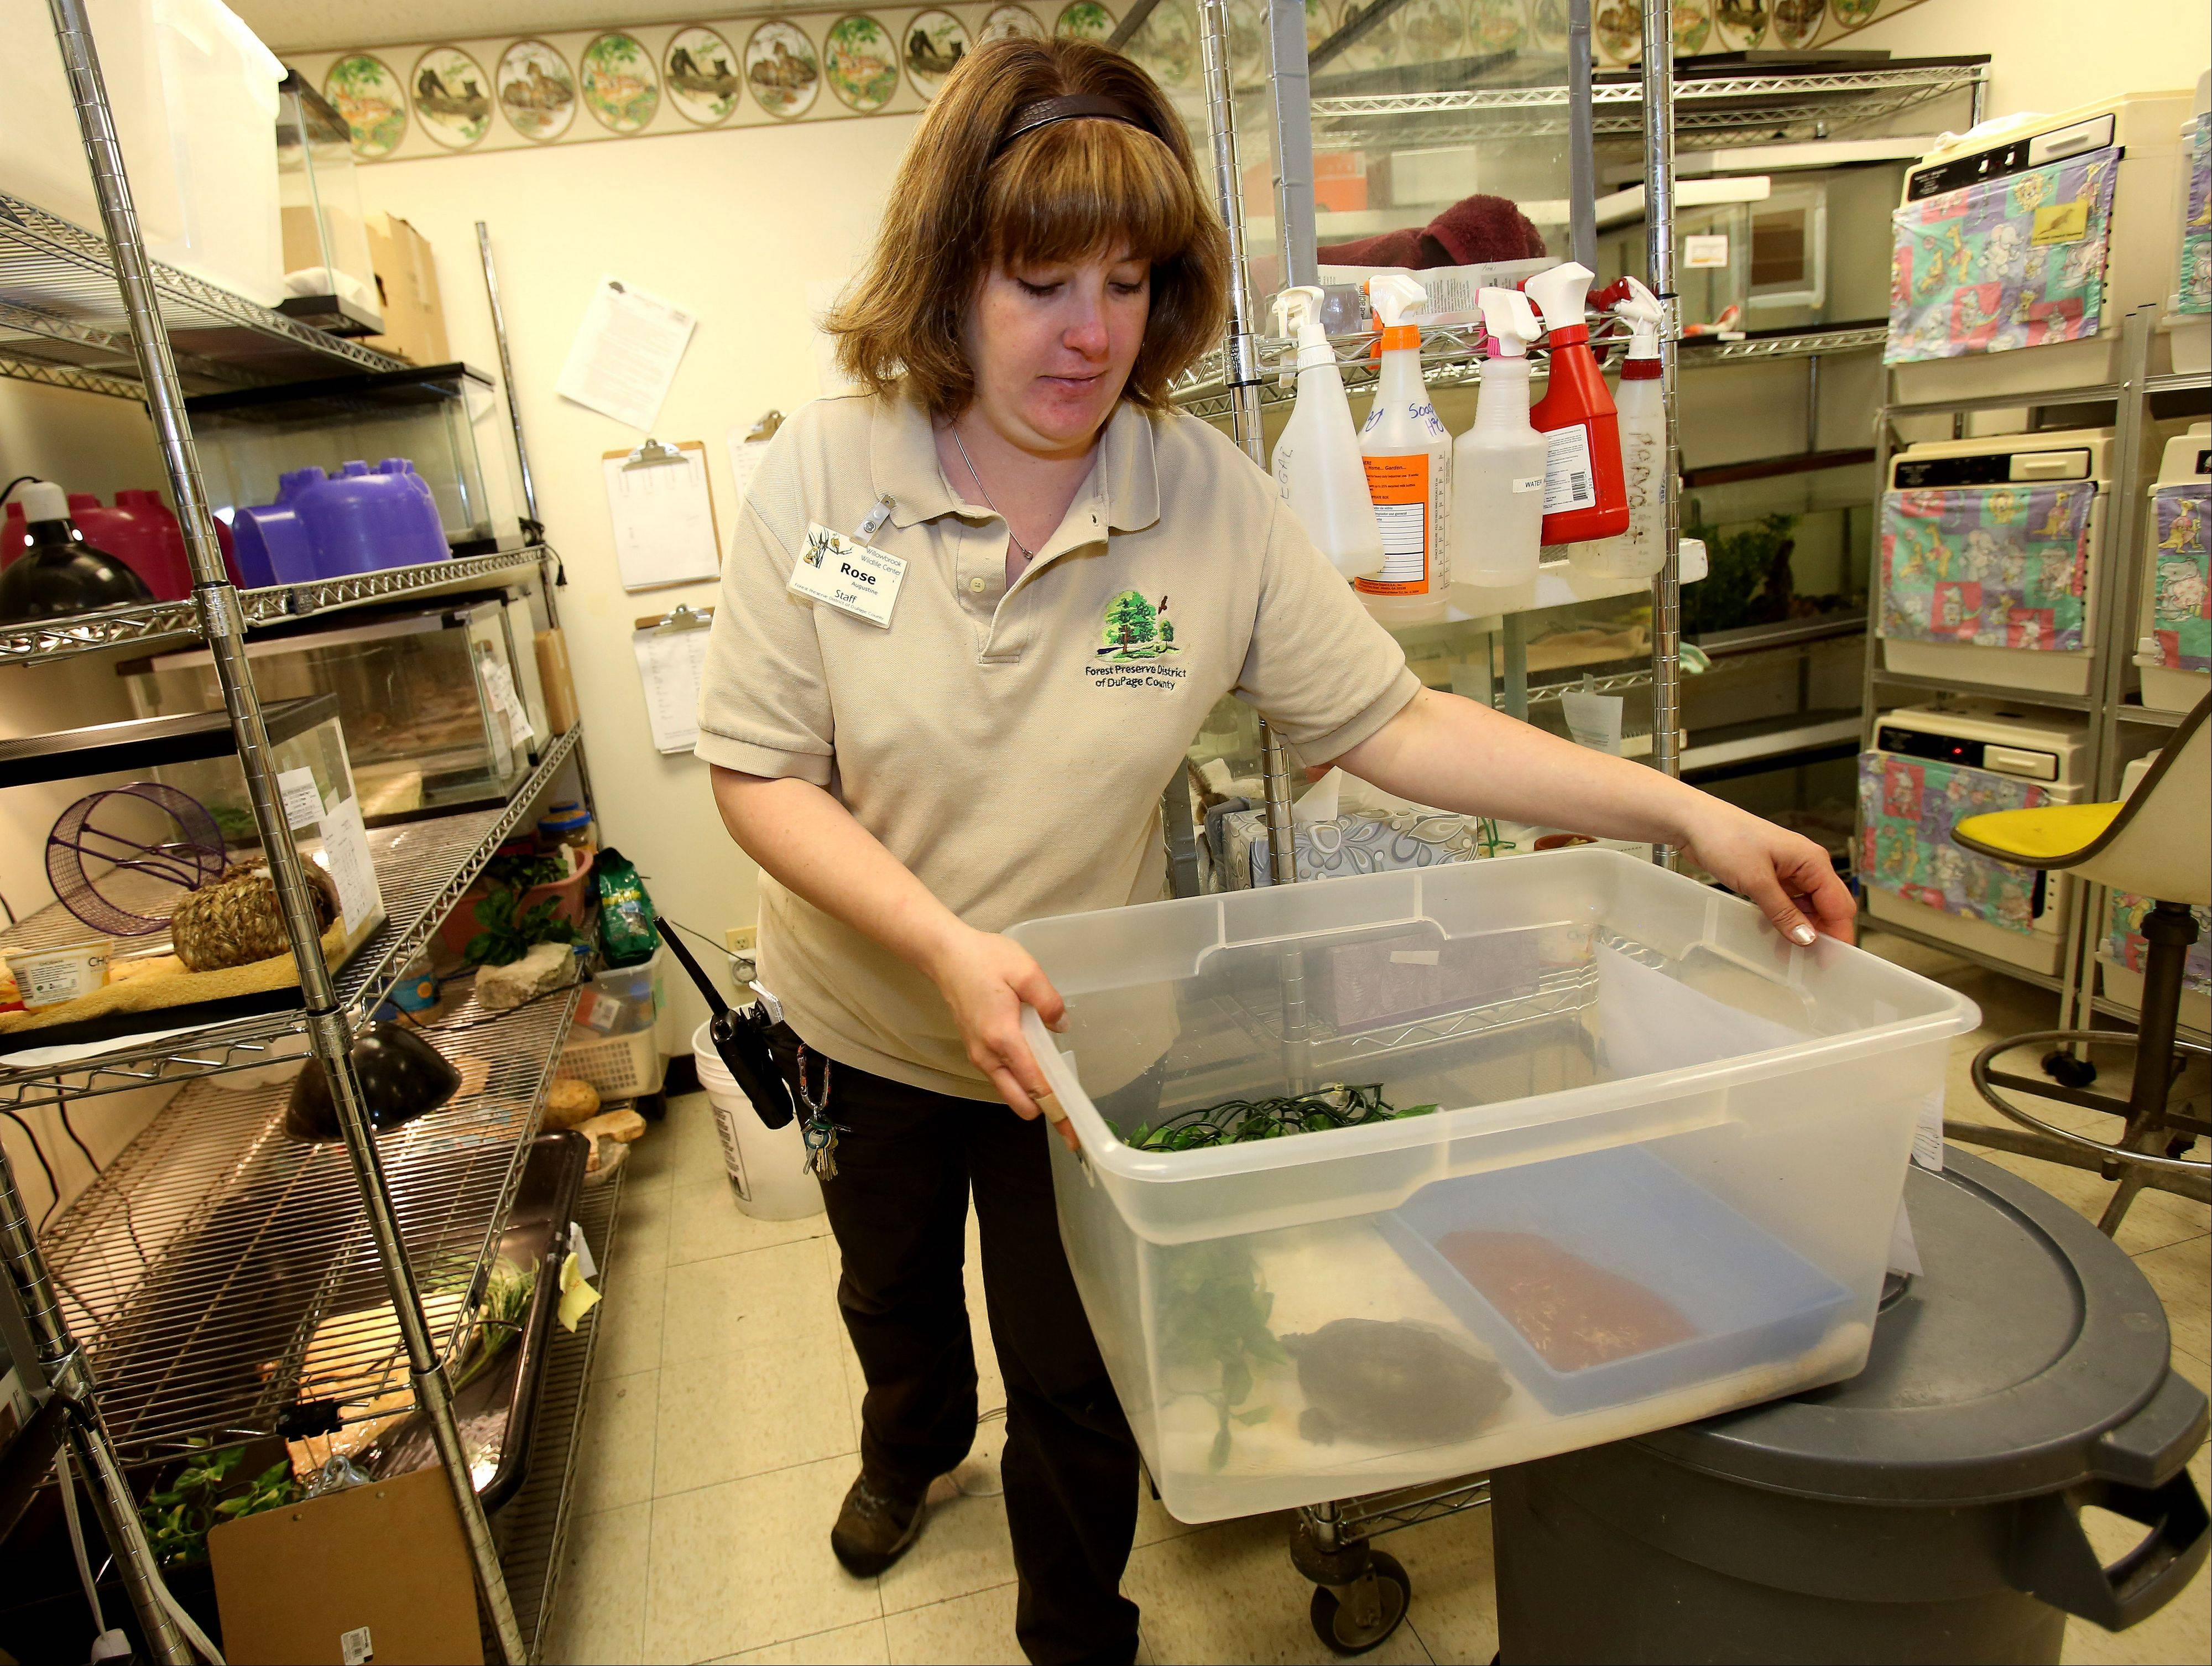 Rose Augustine, wildlife specialist, cares for turtles recovering at the Willowbrook Wildlife Center in Glen Ellyn after being struck by cars, including the painted turtle at right with a damaged shell and a broken leg.